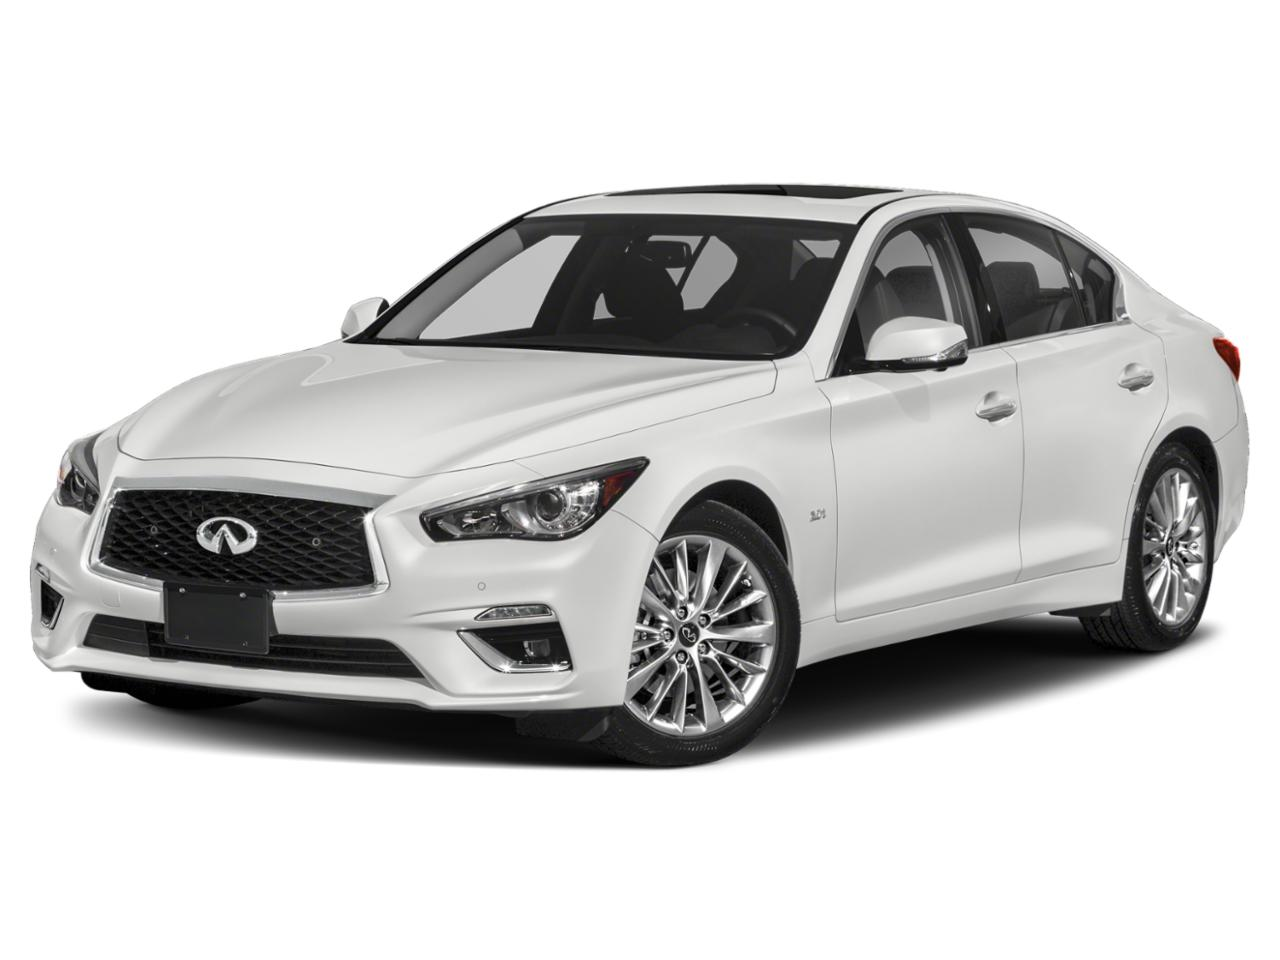 2021 INFINITI Q50 Vehicle Photo in Houston, TX 77090